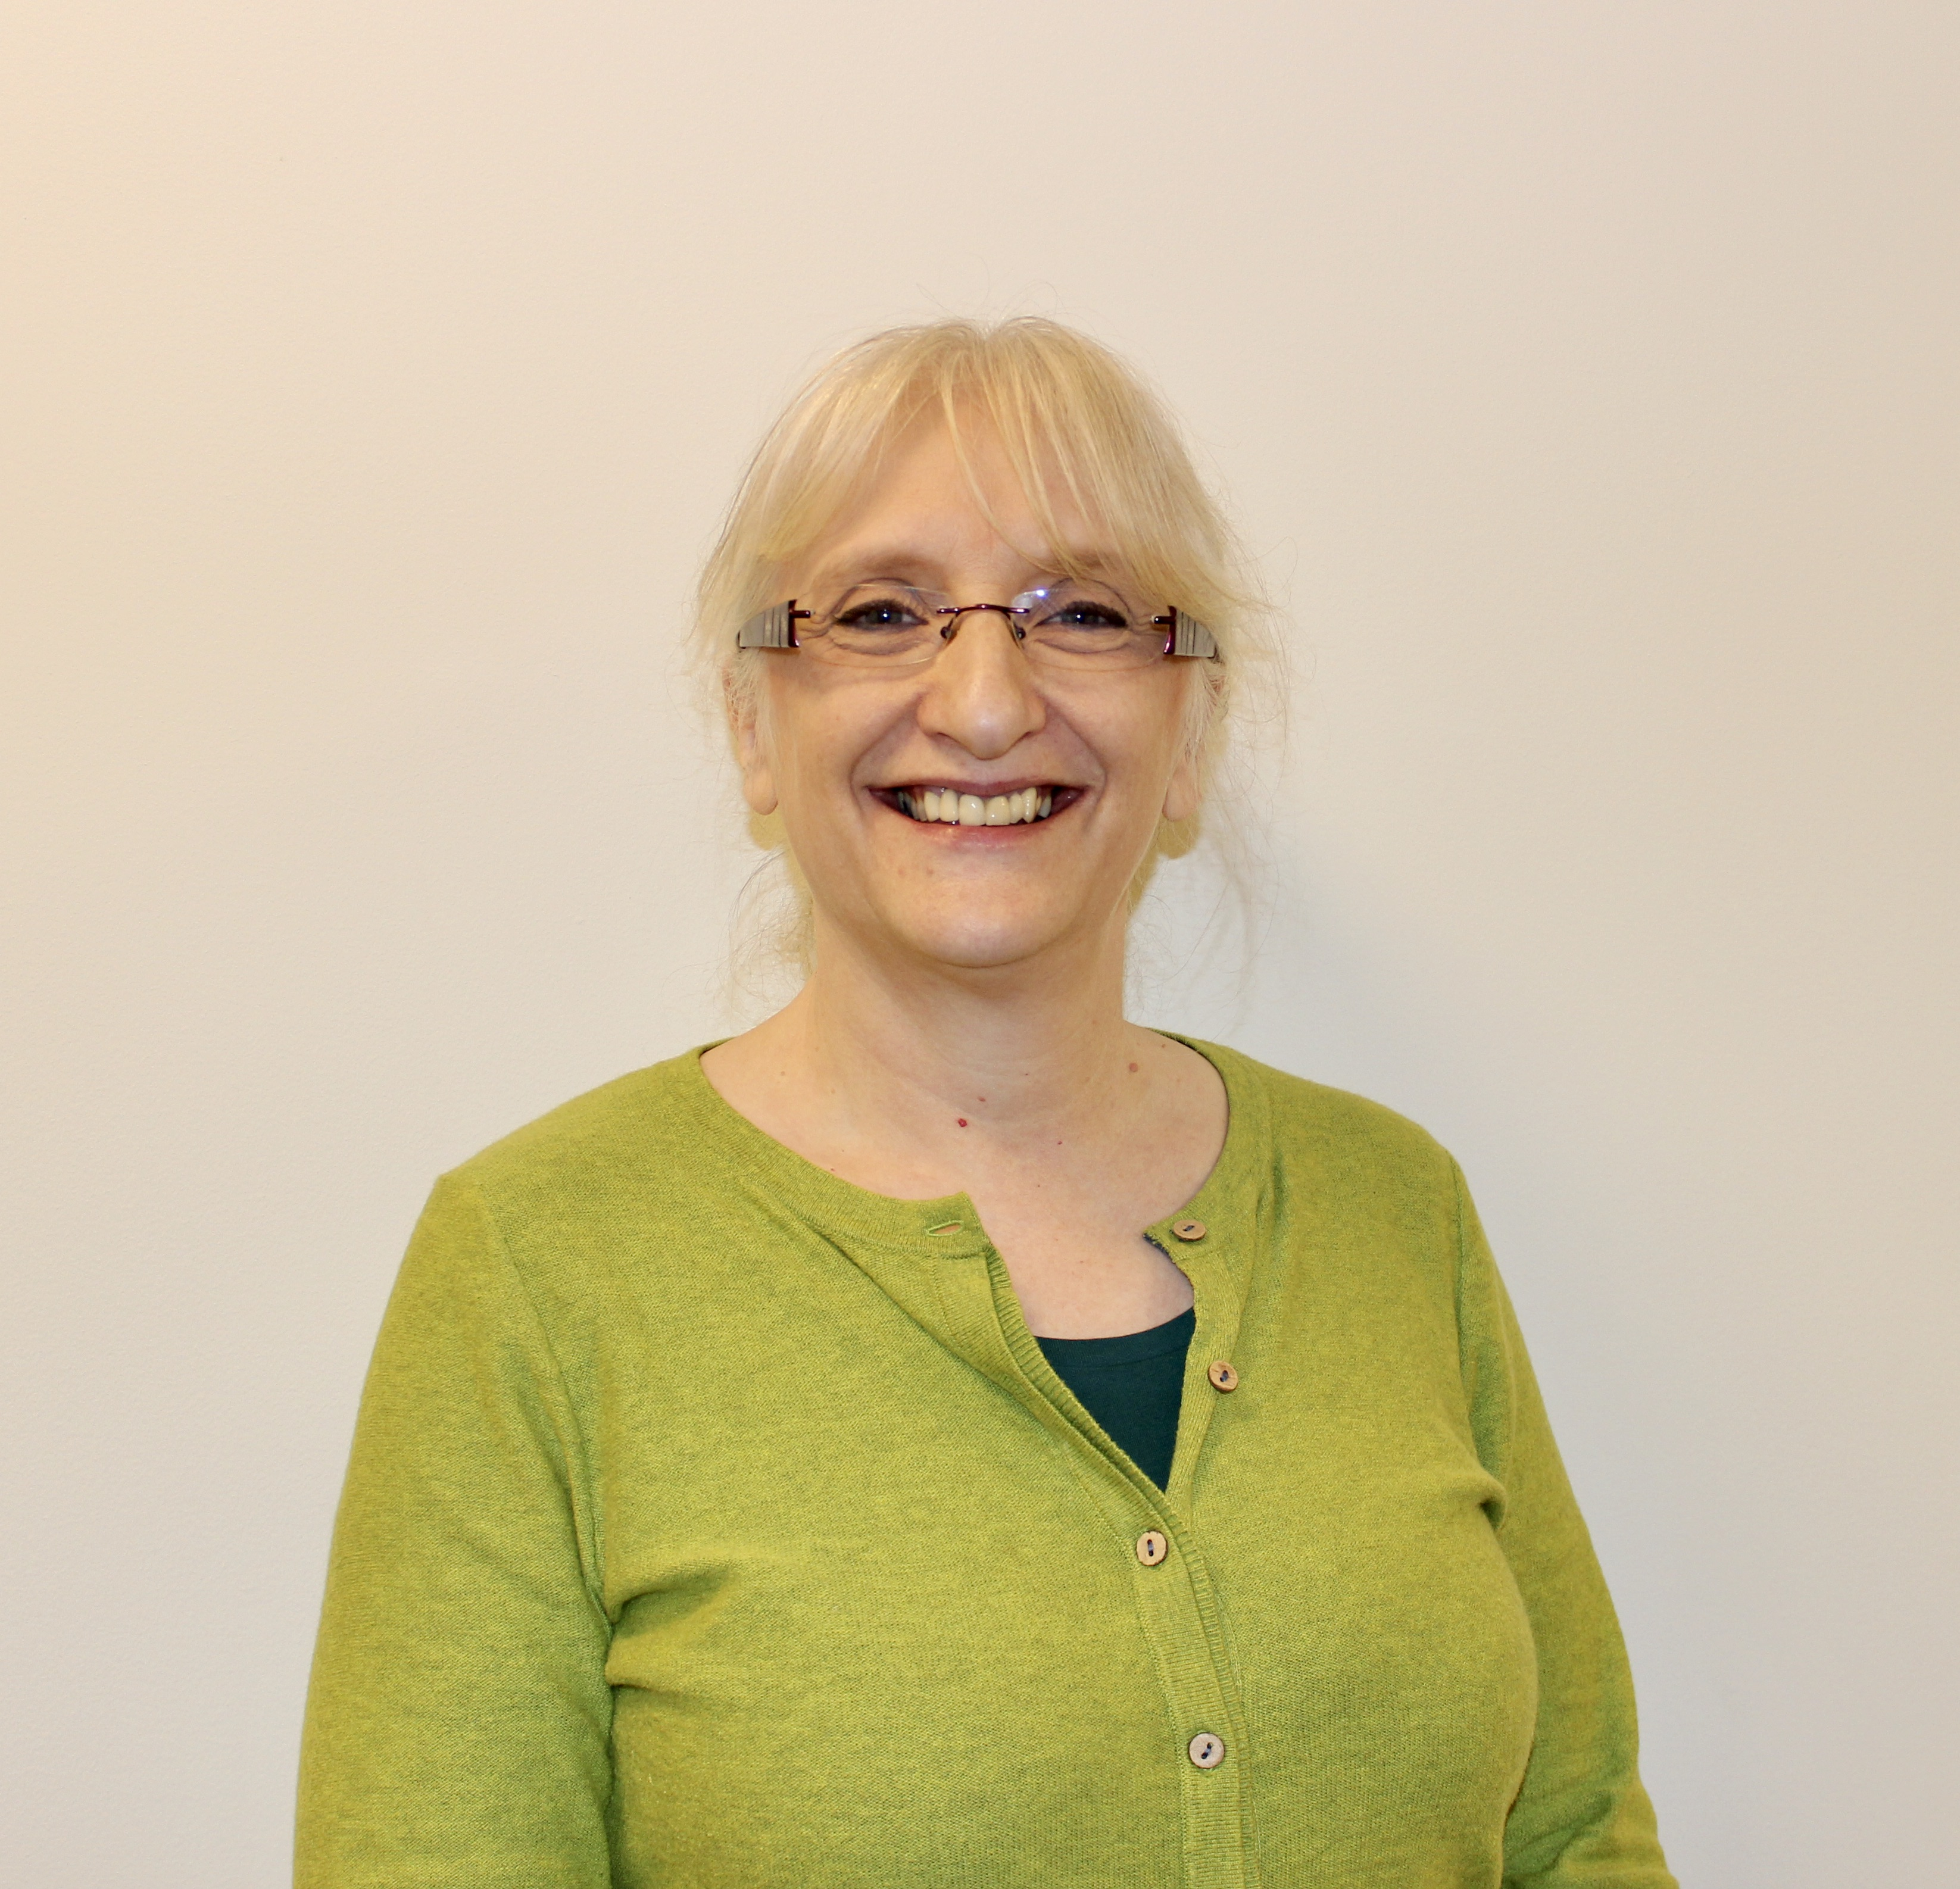 Julie Thompson is information manager at Guts UK and a volunteer for The IBS Network.